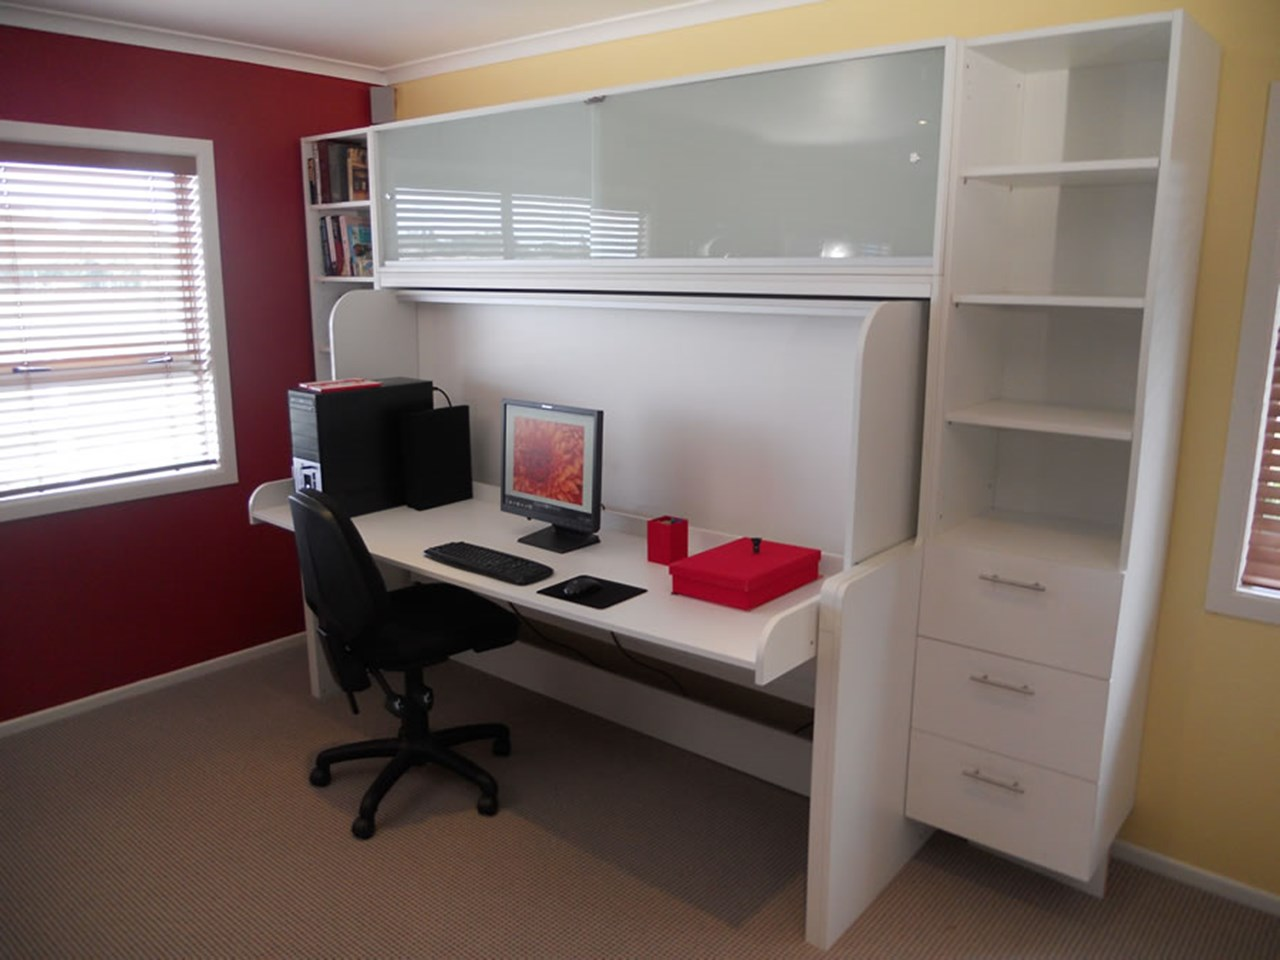 Design Hidden Bed hidden bed barrett joinery ltd timaru desk 1 jpg